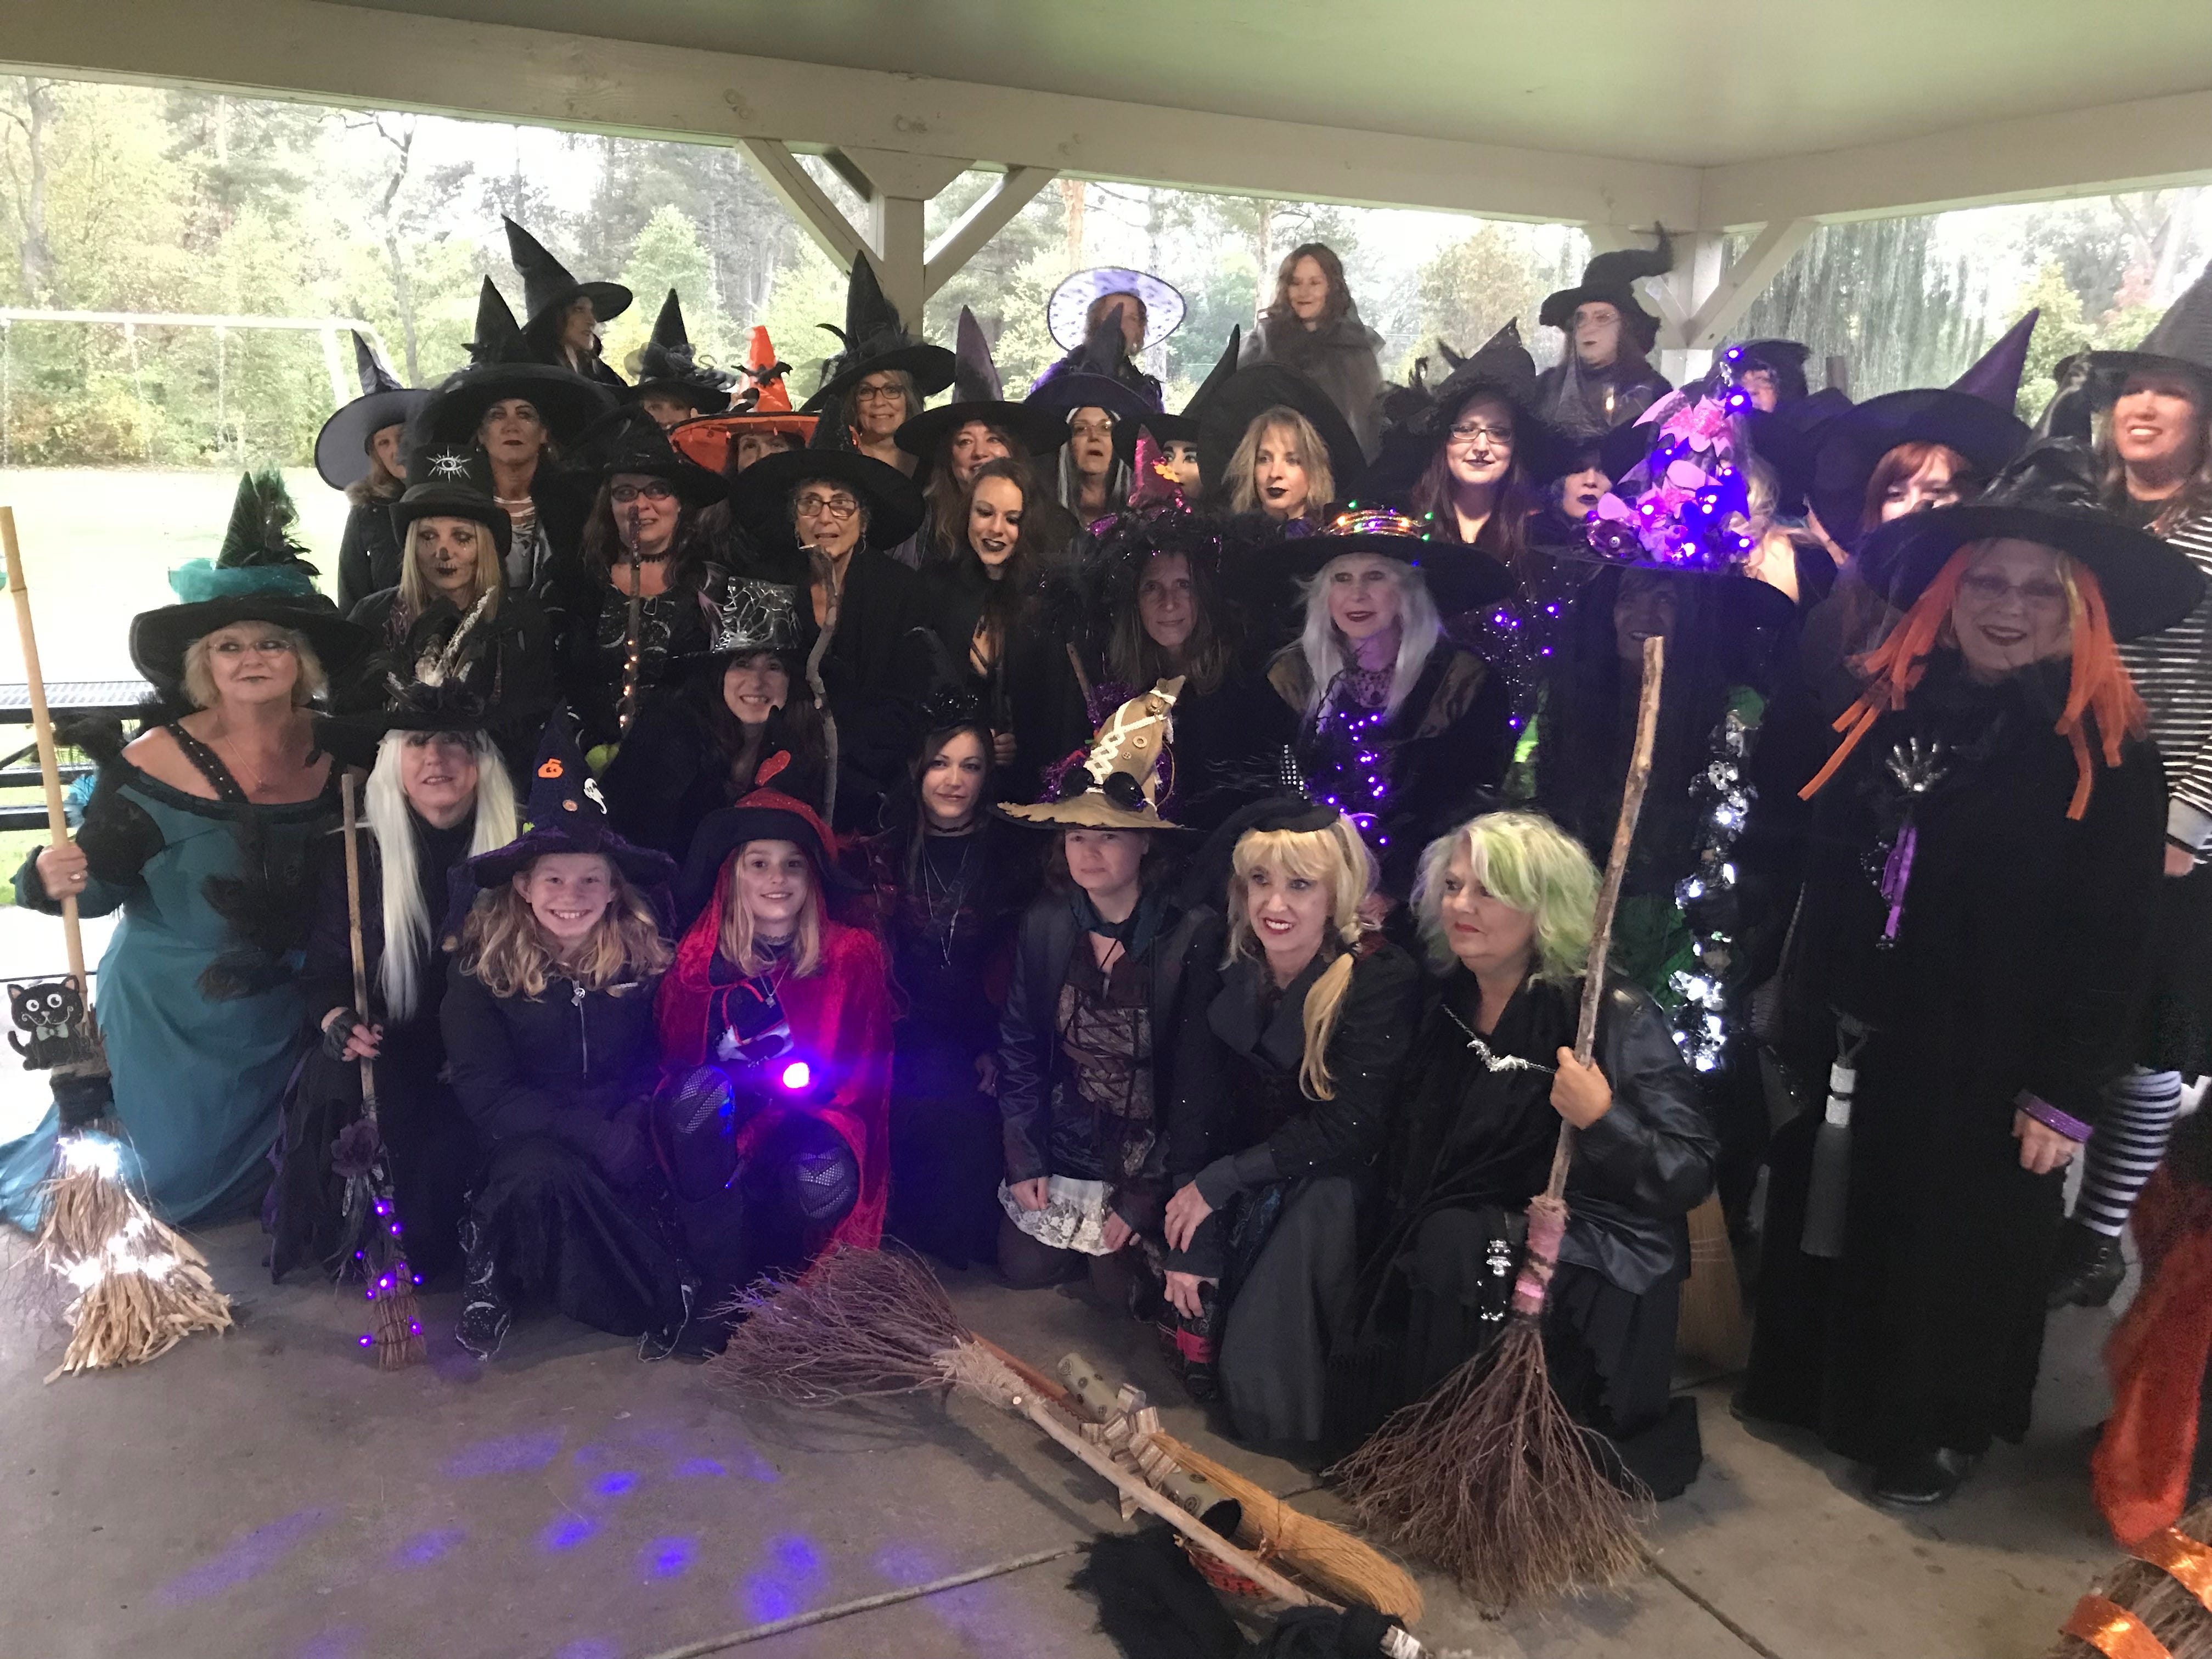 The witches brew up a group photo before the walk gets started.